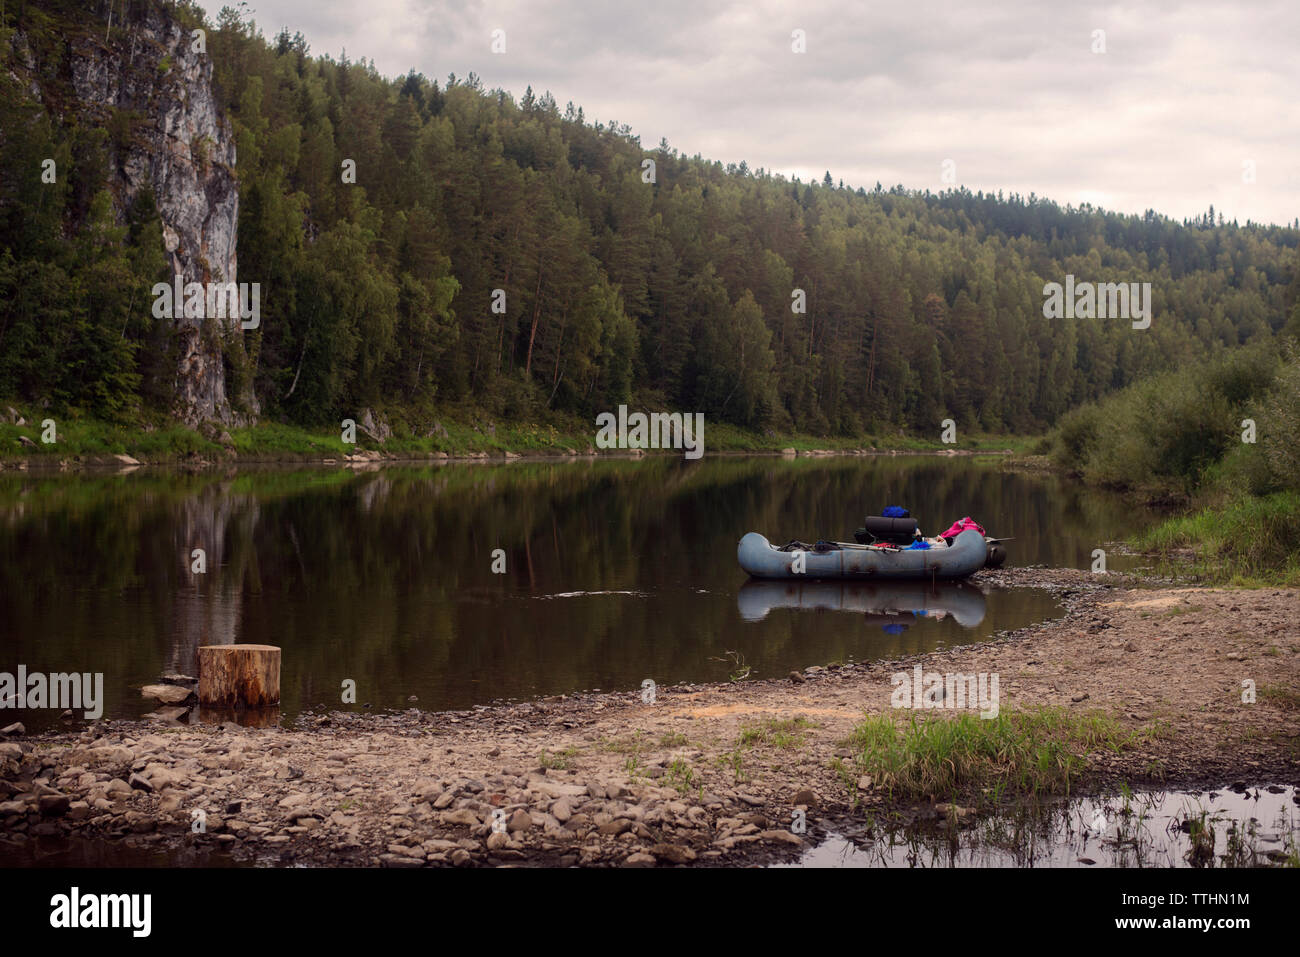 Inflatable raft on riverbank against trees - Stock Image